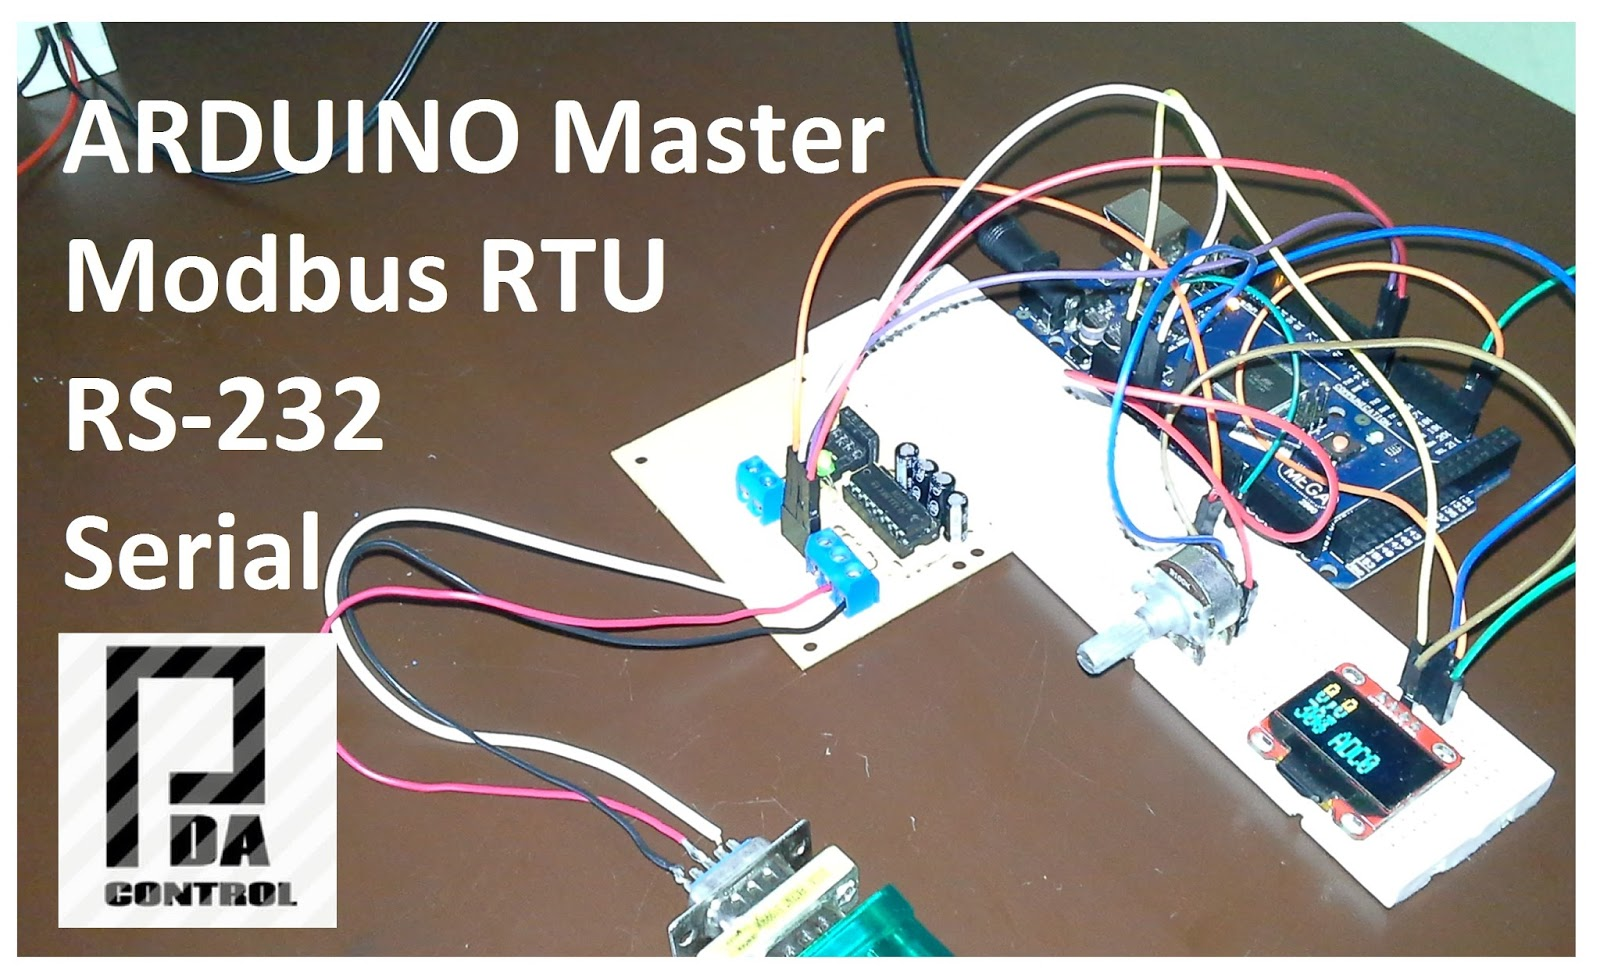 Modbus RTU Master tests with Arduino via RS232 Part 2 - PDAControl